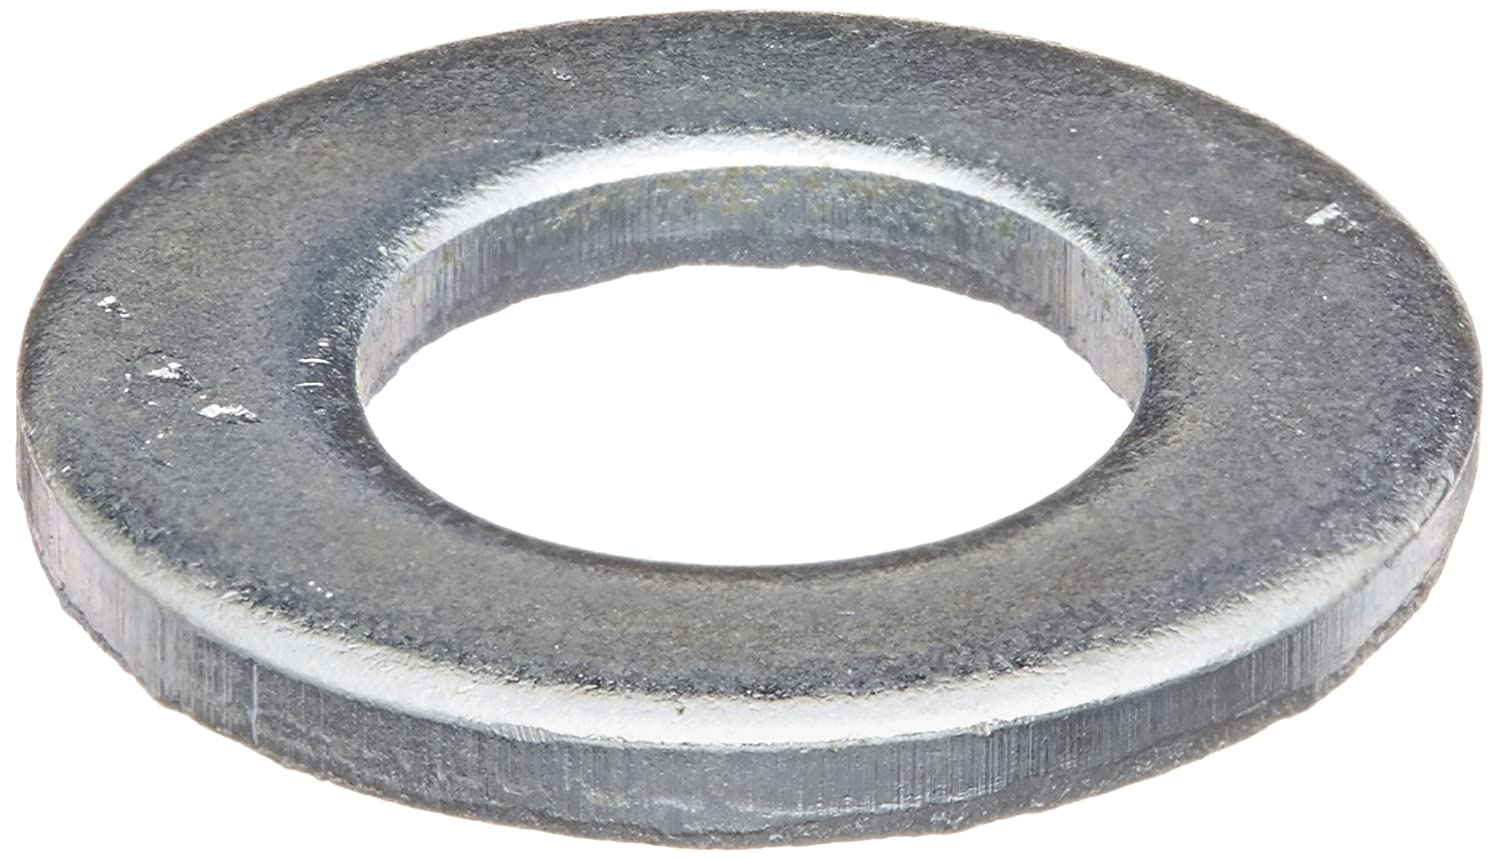 10.5 mm ID Steel Flat Washer 20 mm OD 2 mm Thick Pack of 100 Small Parts M10D125A Zinc Plated Finish Metric M10 Screw Size DIN 125